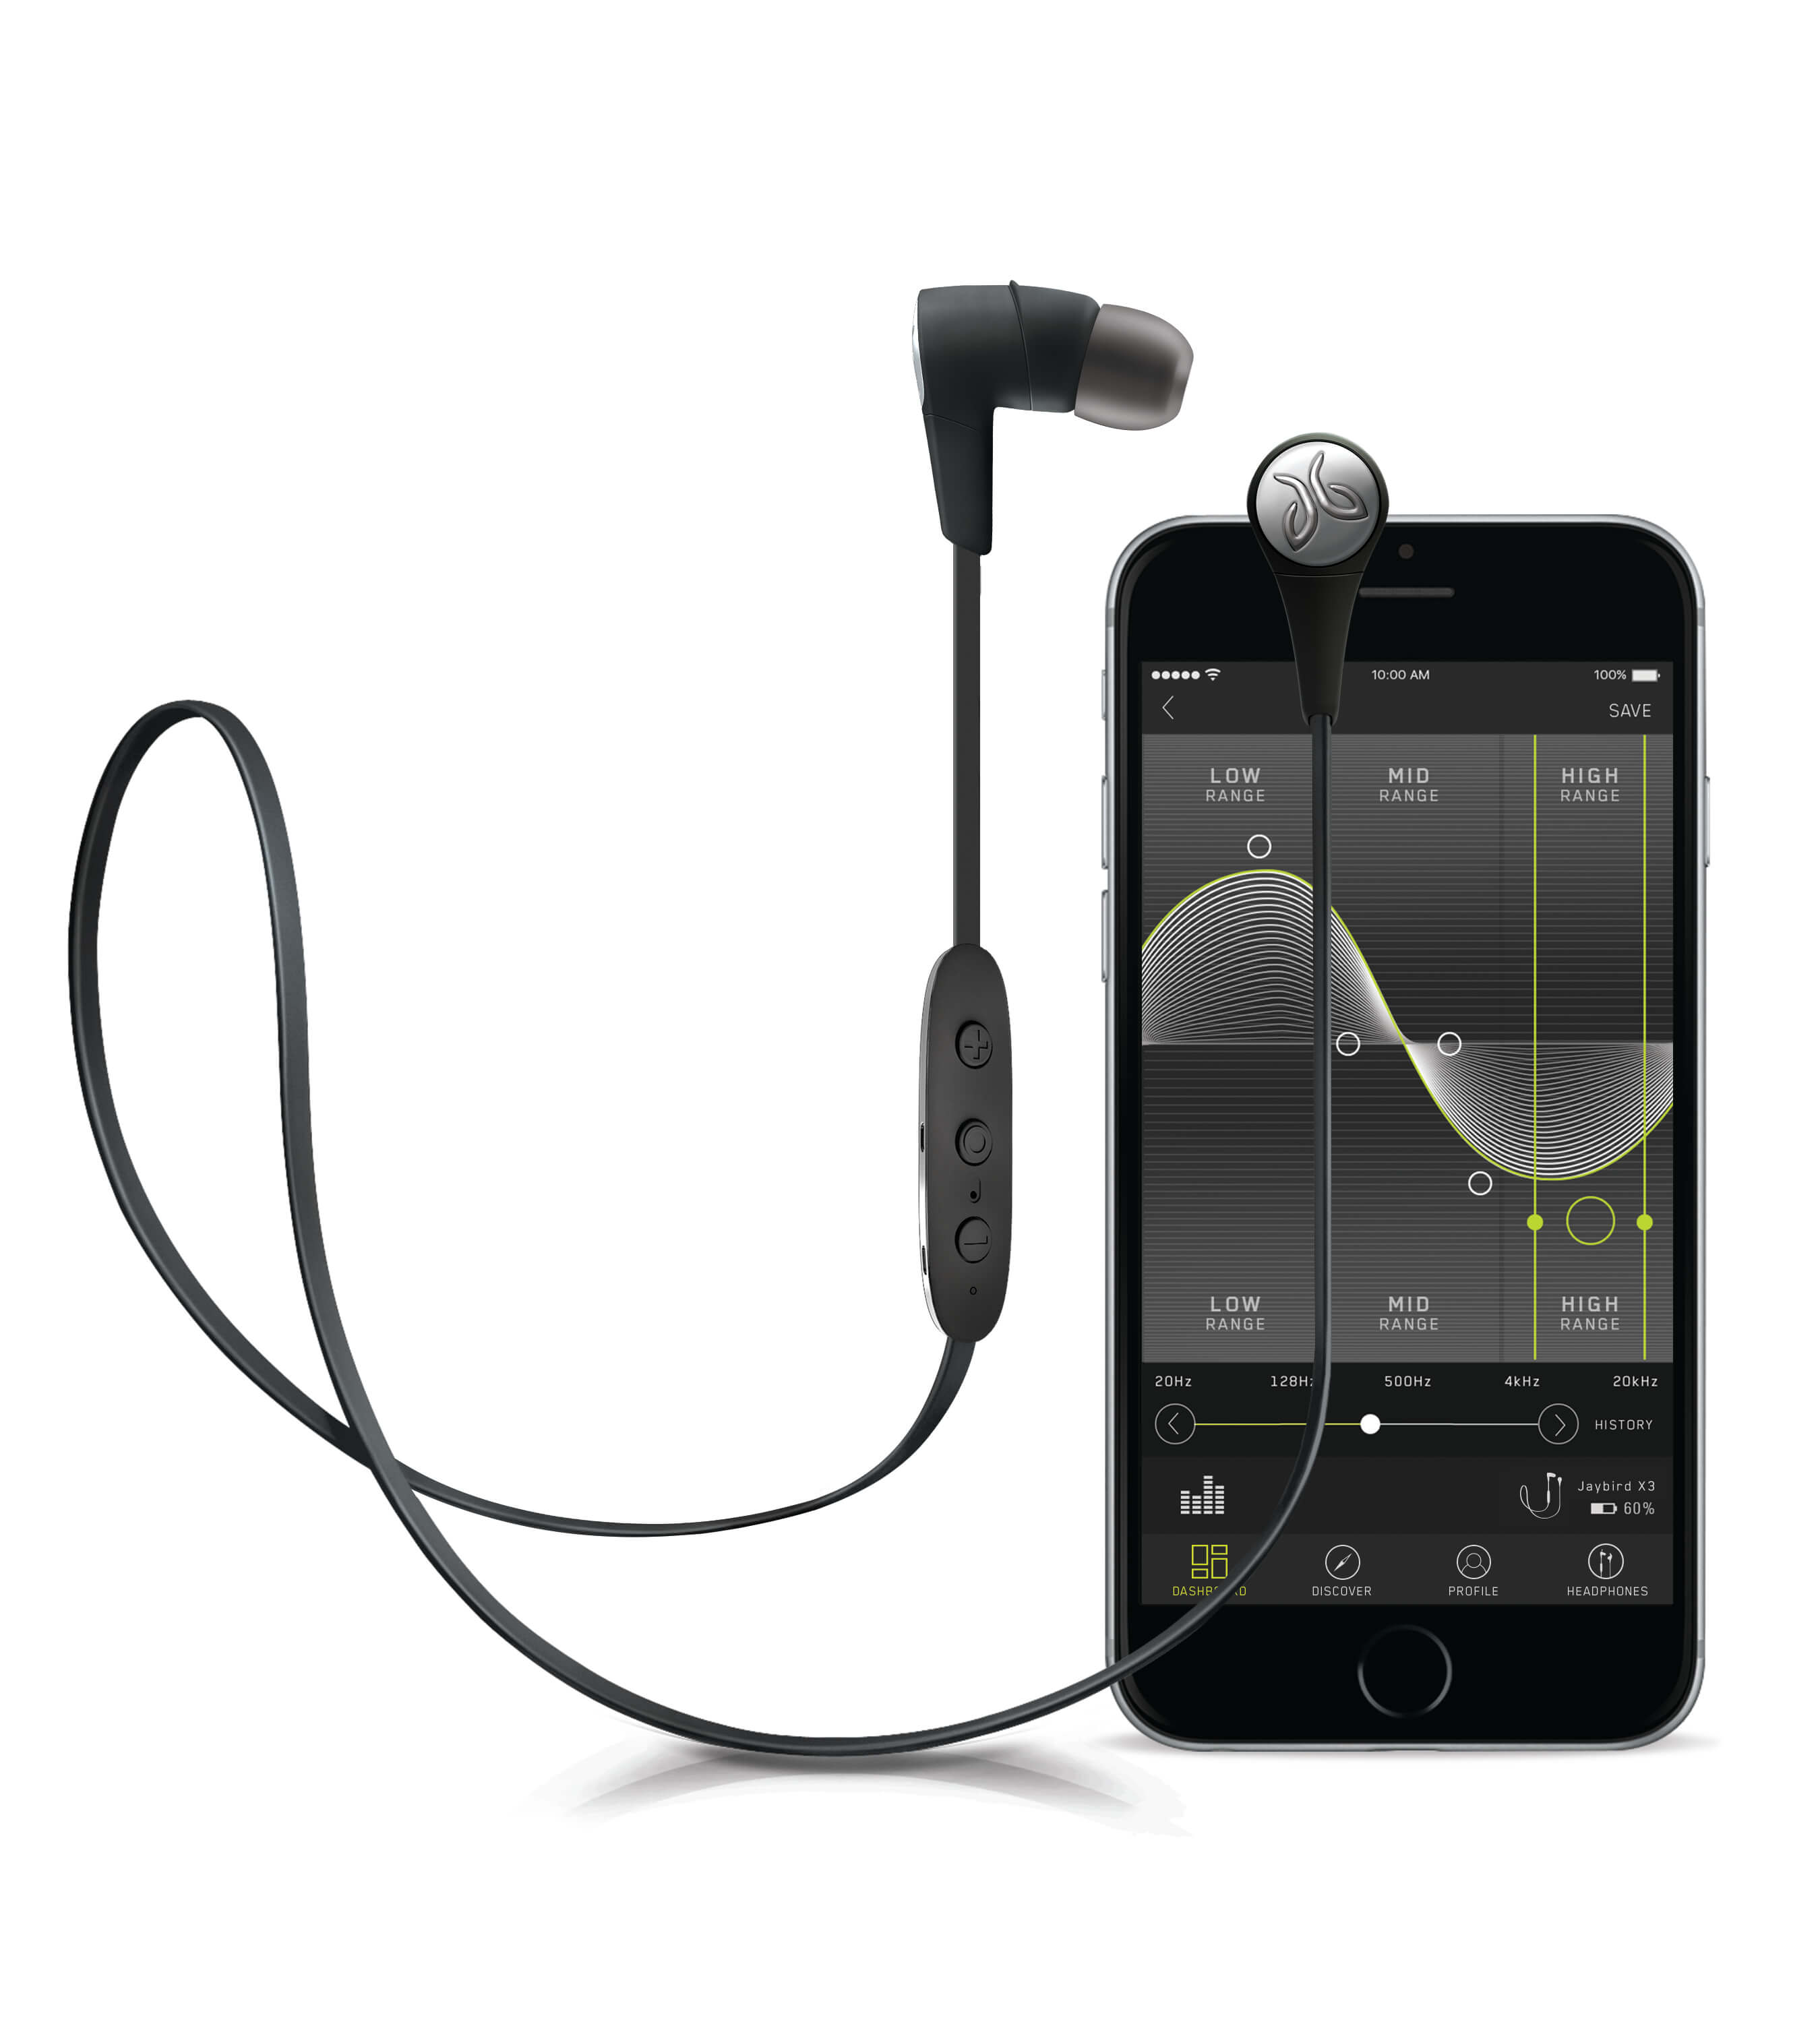 Blackout Jaybird X3 Sport Headphones Beside iPhone